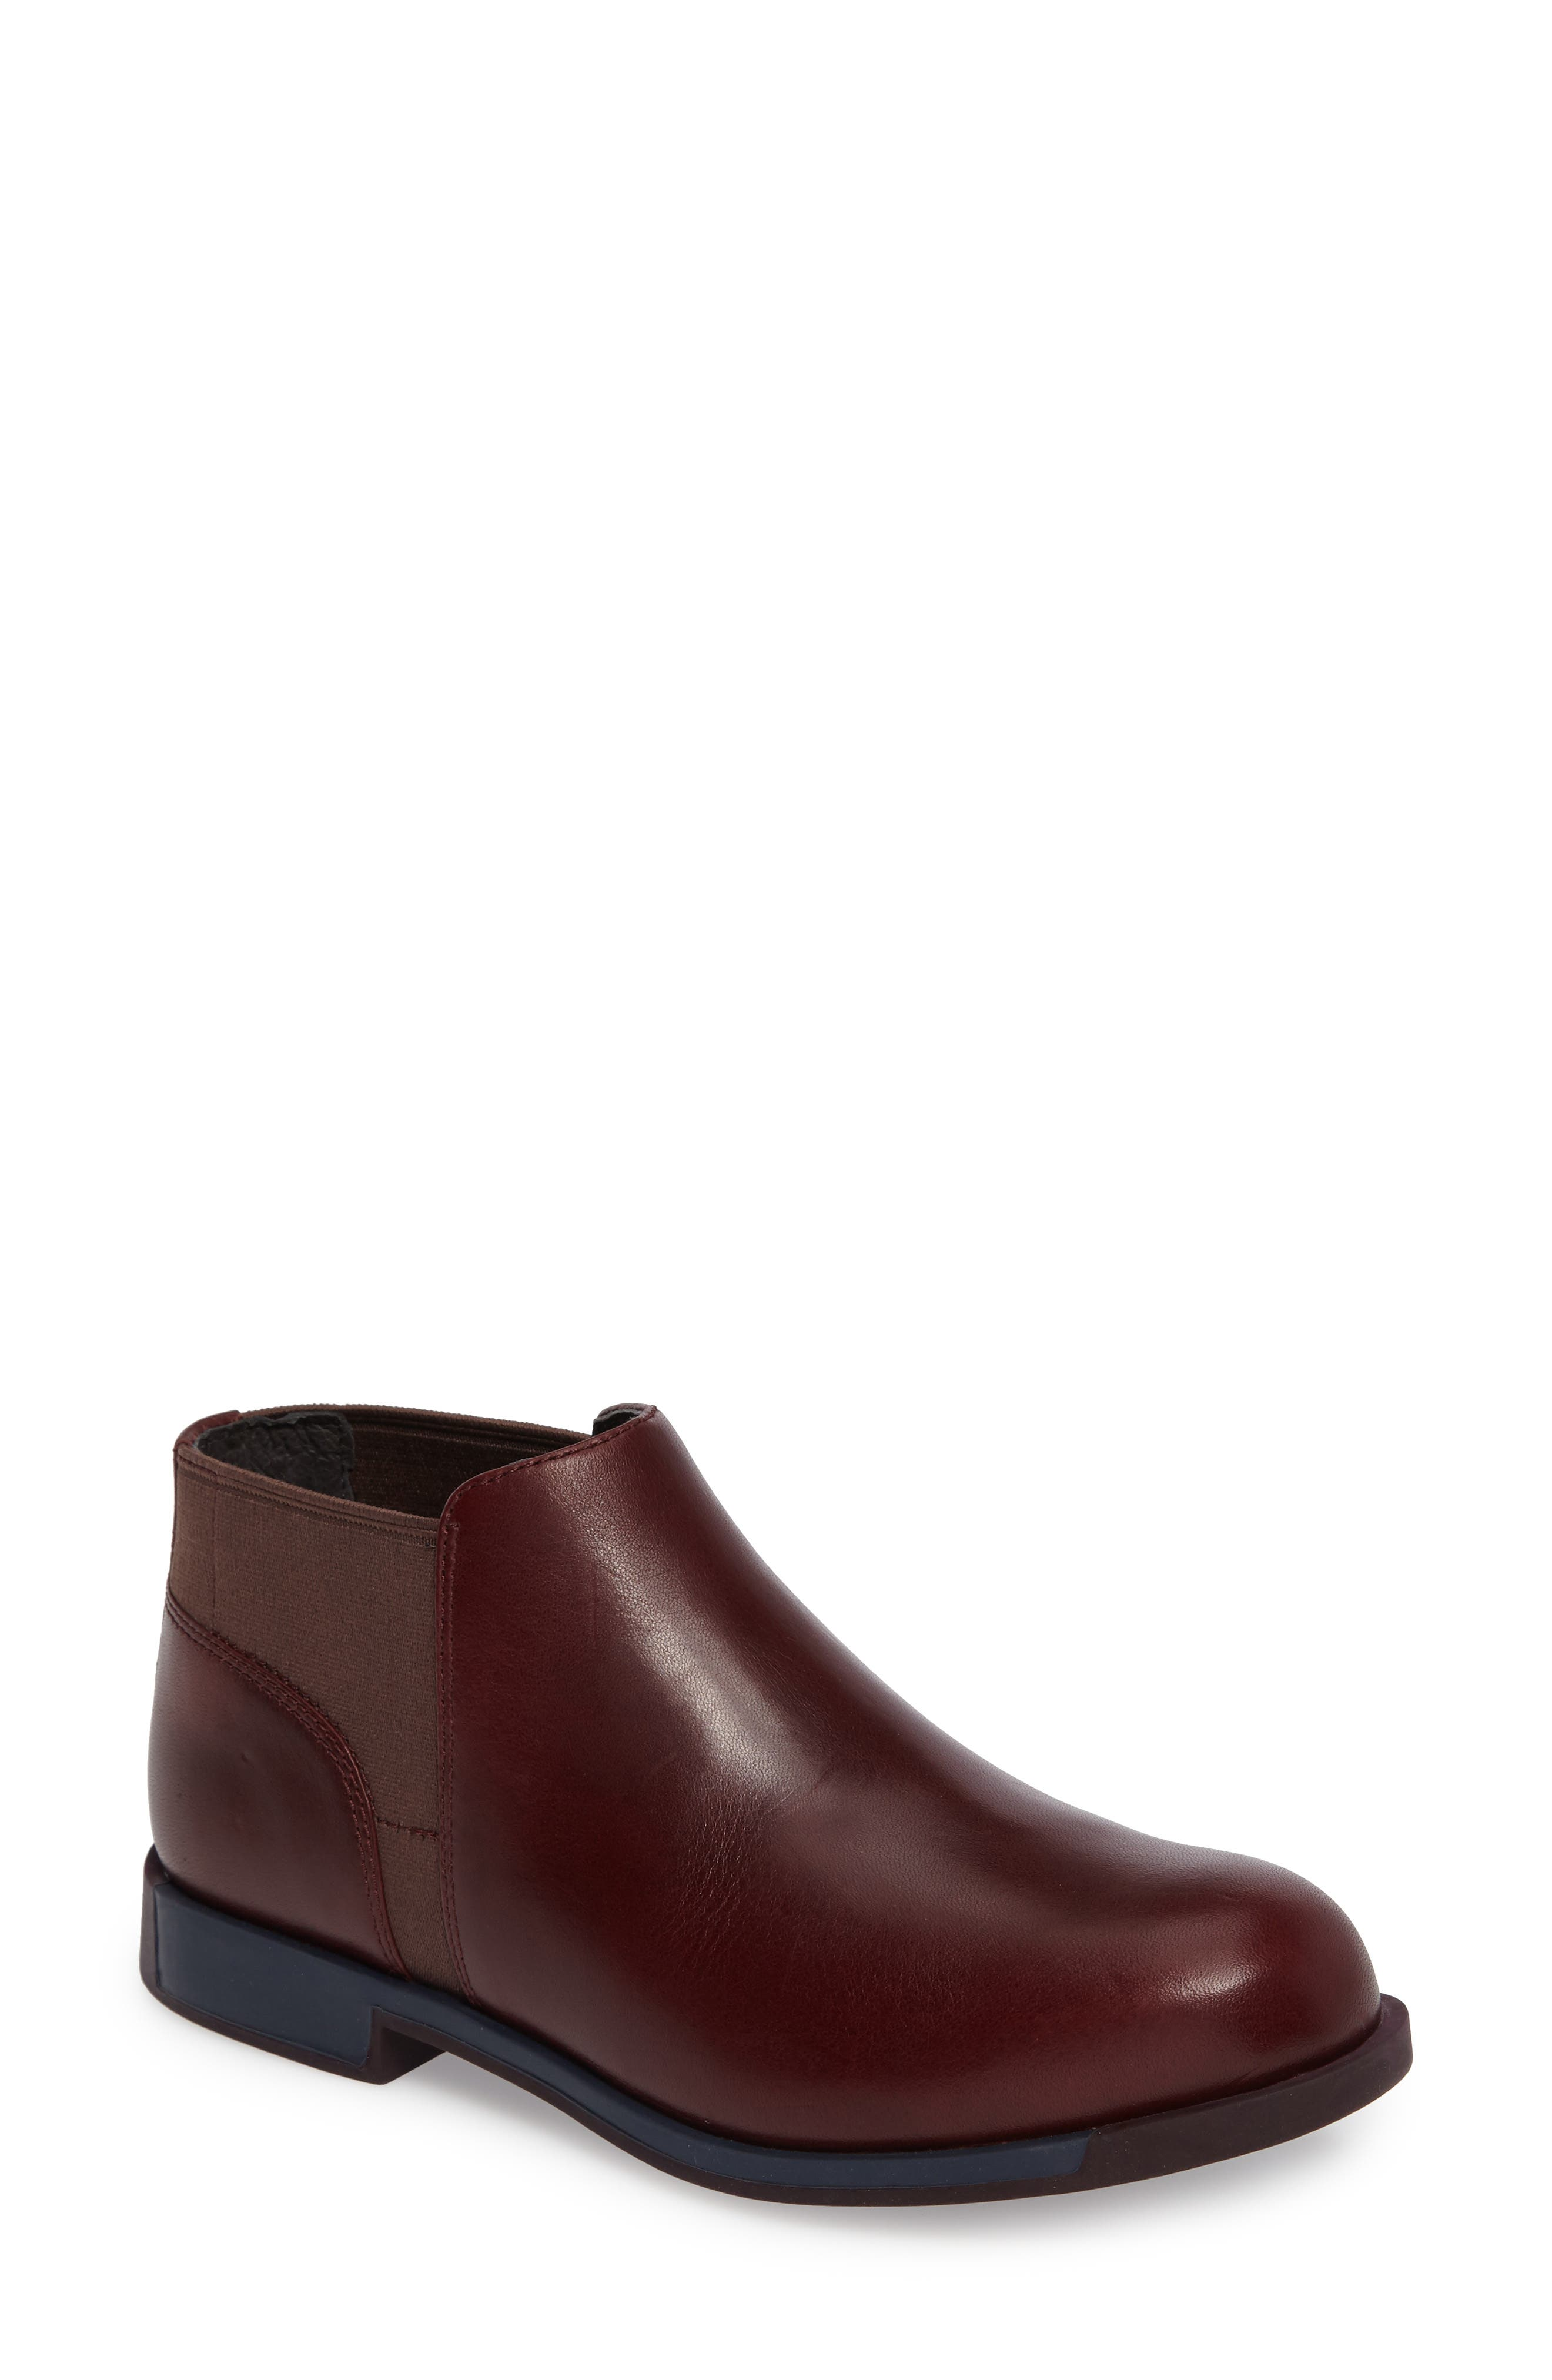 CAMPER Bowie Chelsea Boot, Main, color, 600